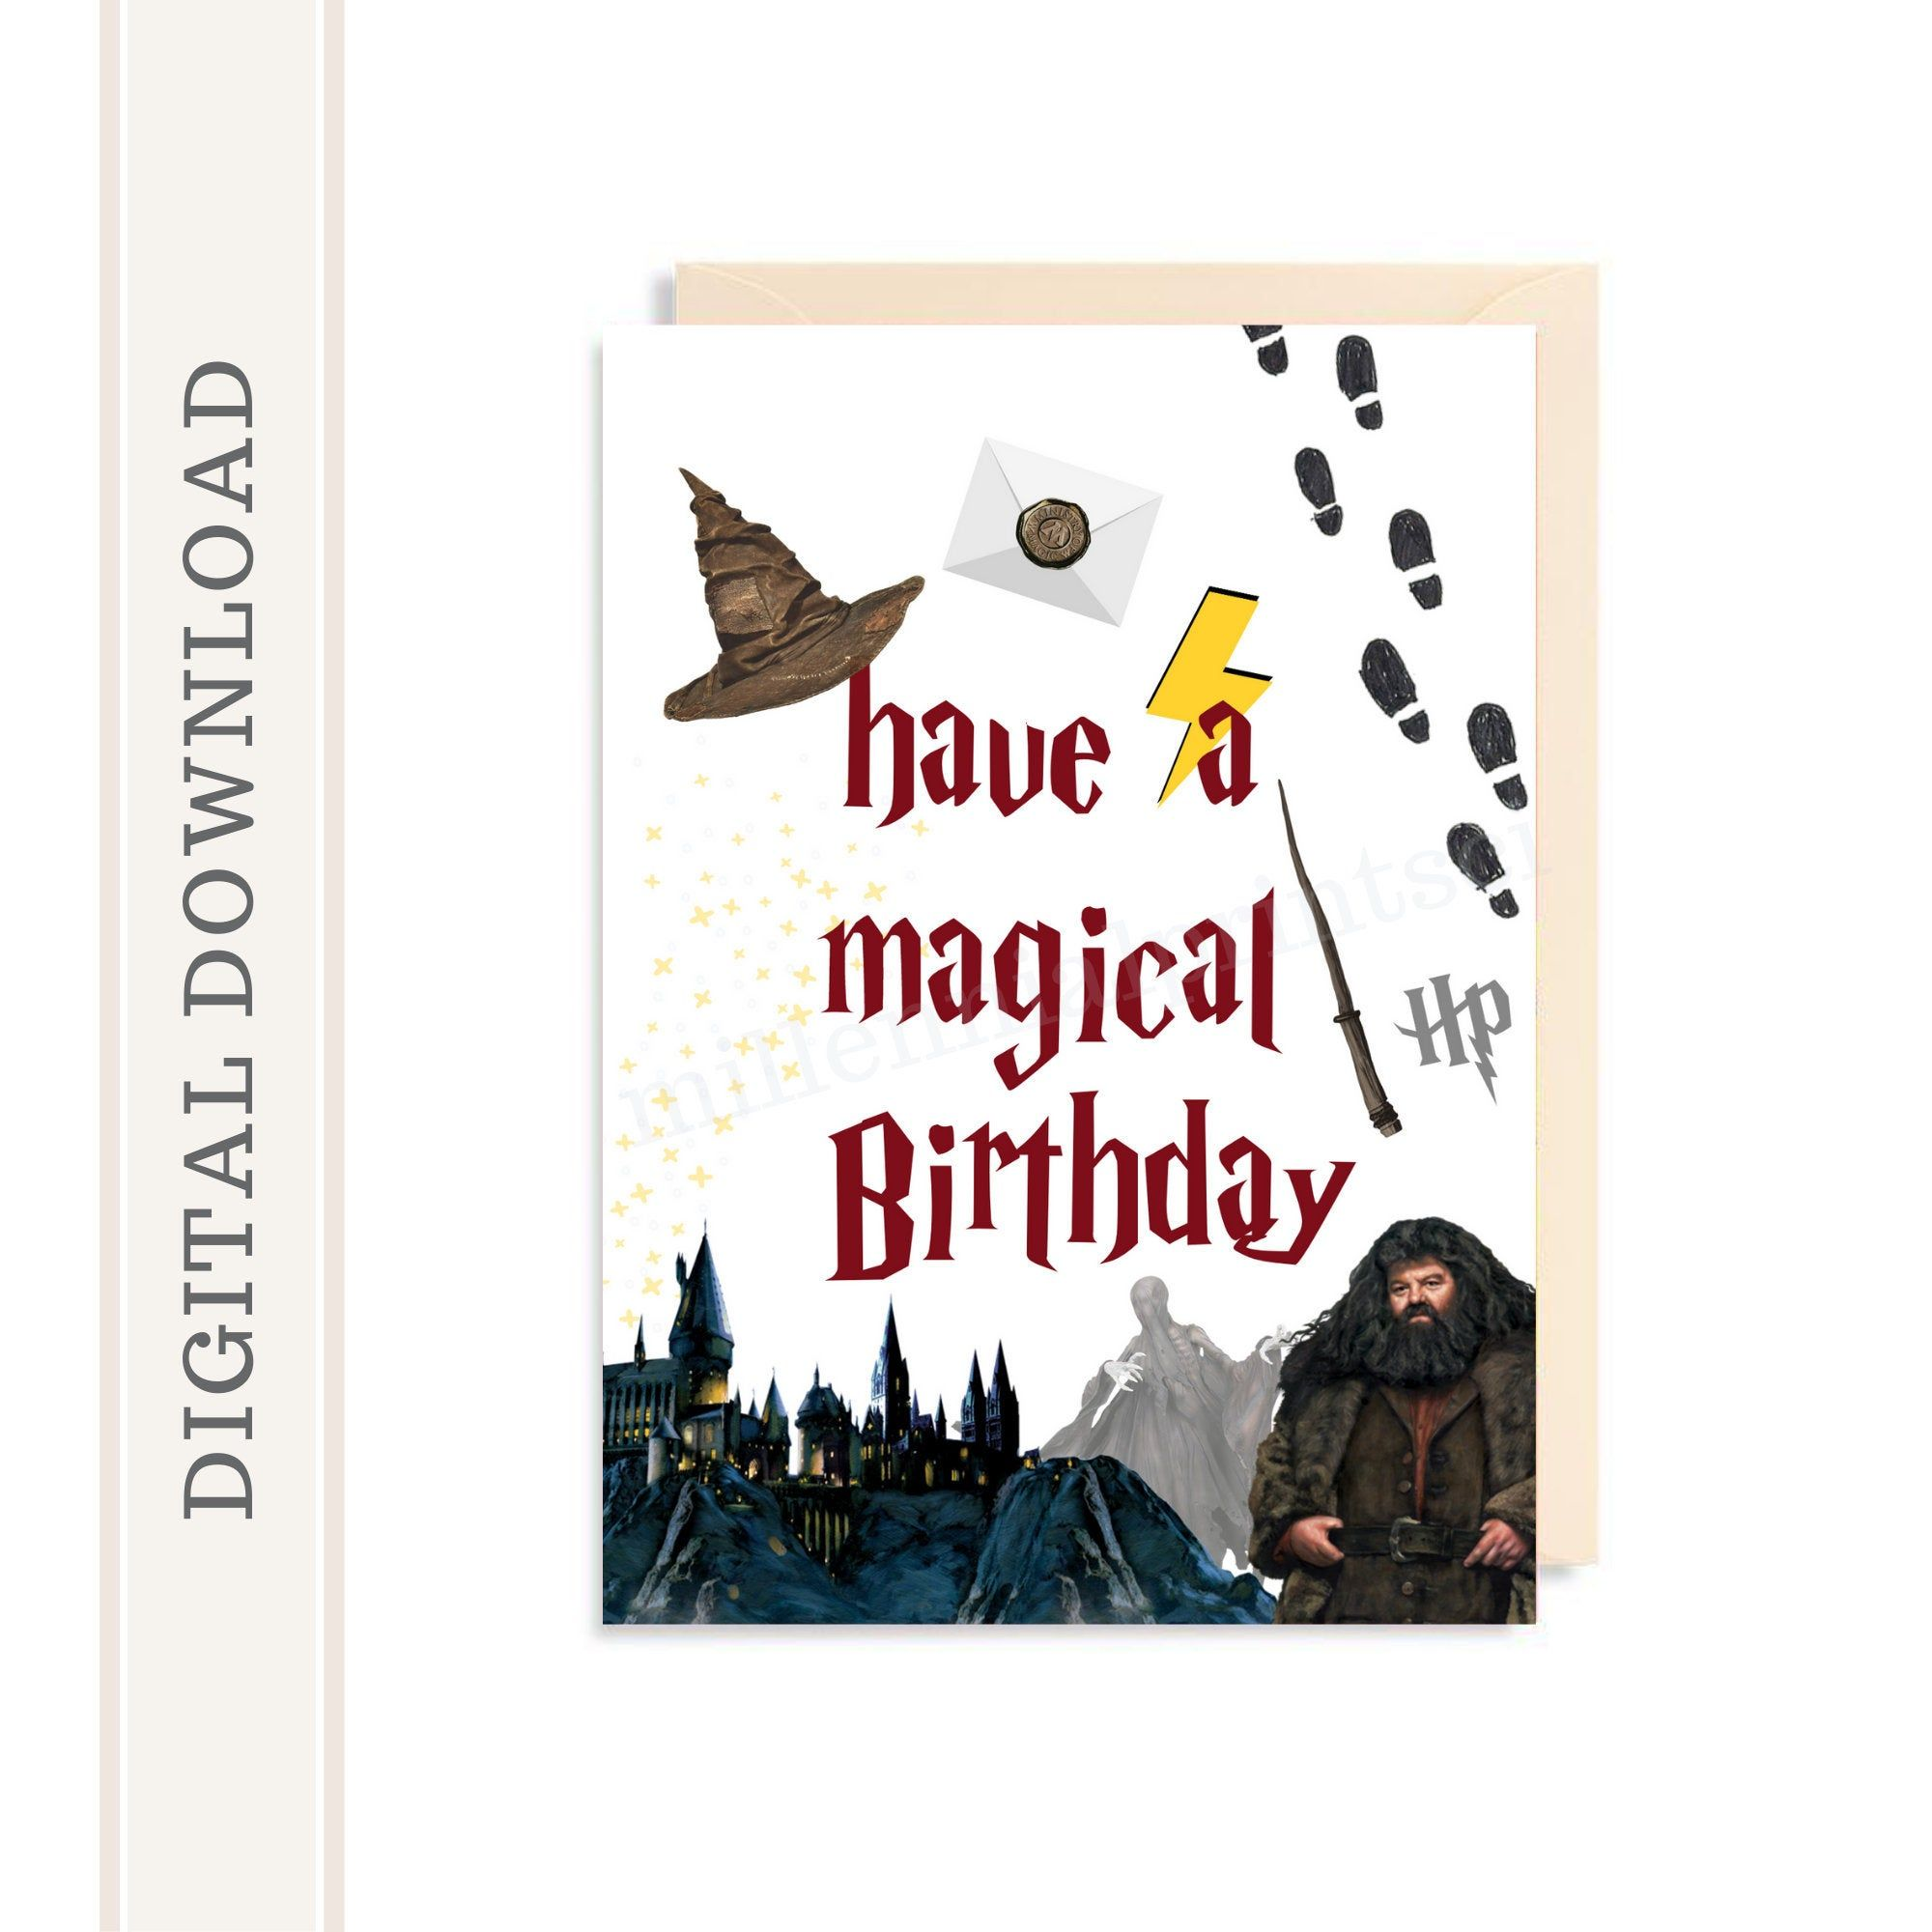 Pin By Kathleen Barnack On Harry Potter Birthday Cards In 2021 Harry Potter Birthday Cards Birthday Cards Harry Potter Birthday